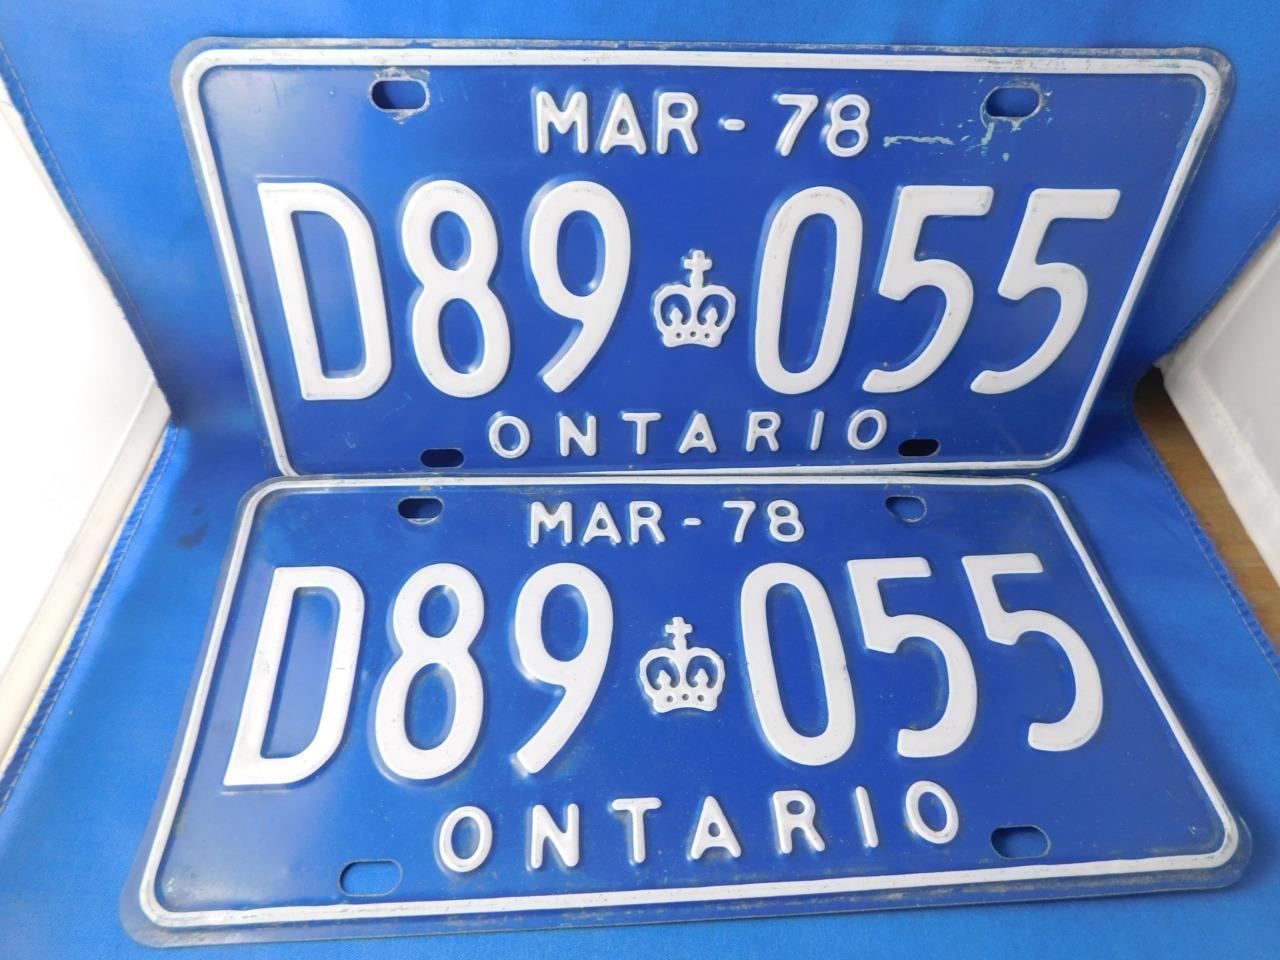 ONTARIO-LICENSE-PLATE-1978-MARCH-D89-055-LOT-SET-VINTAGE-CANADA-CLASSIC-CROWN